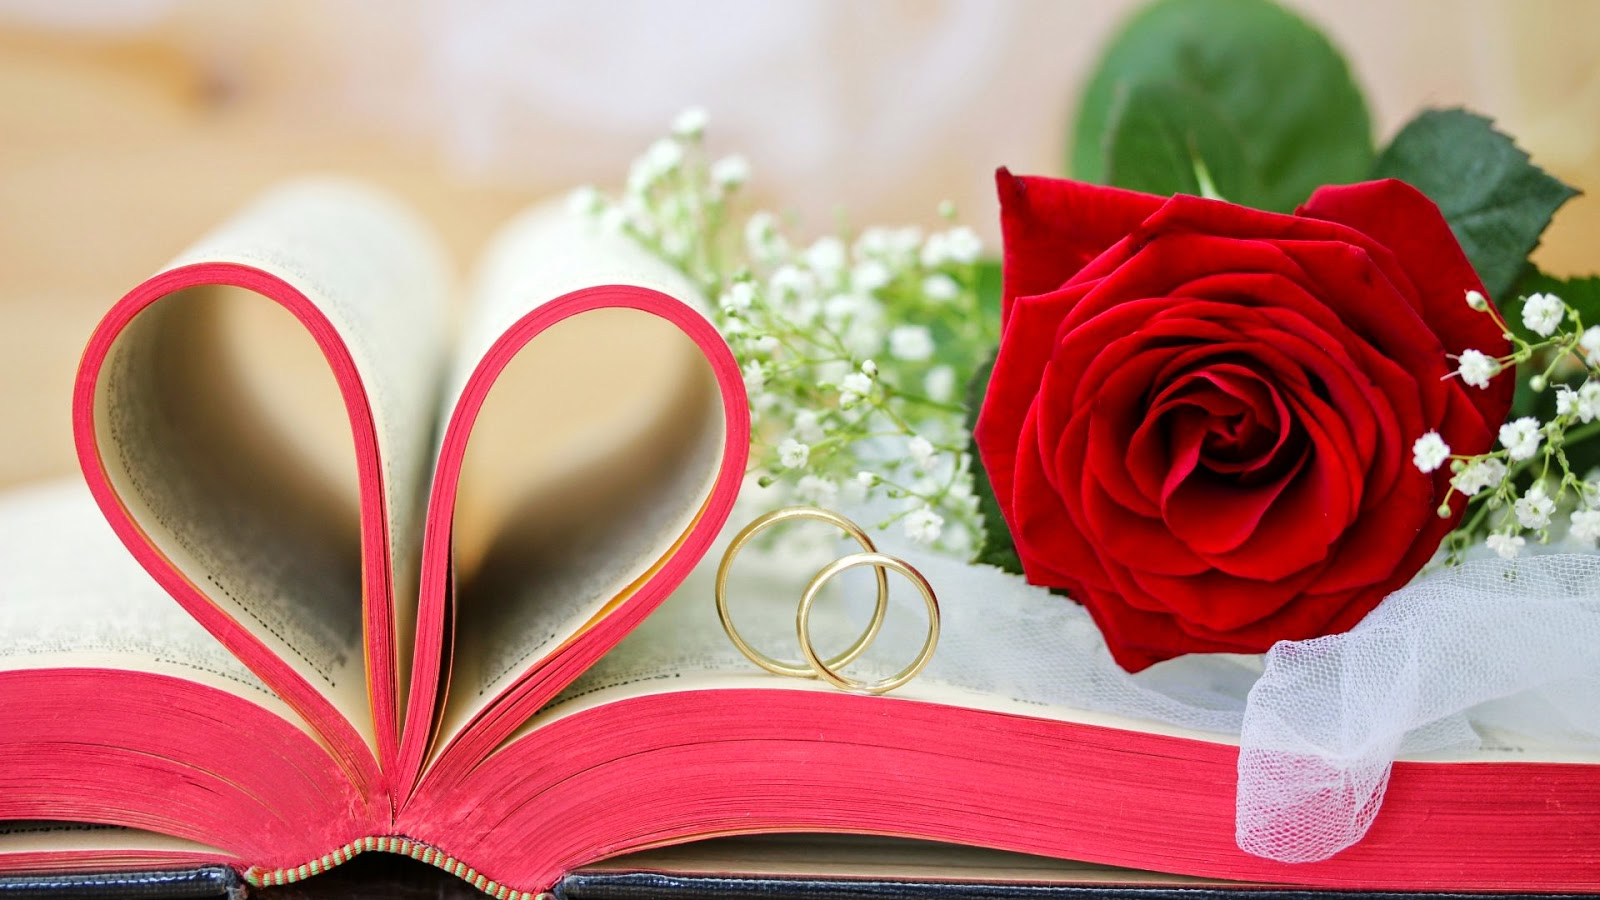 Book Heart Rose Wallpaper